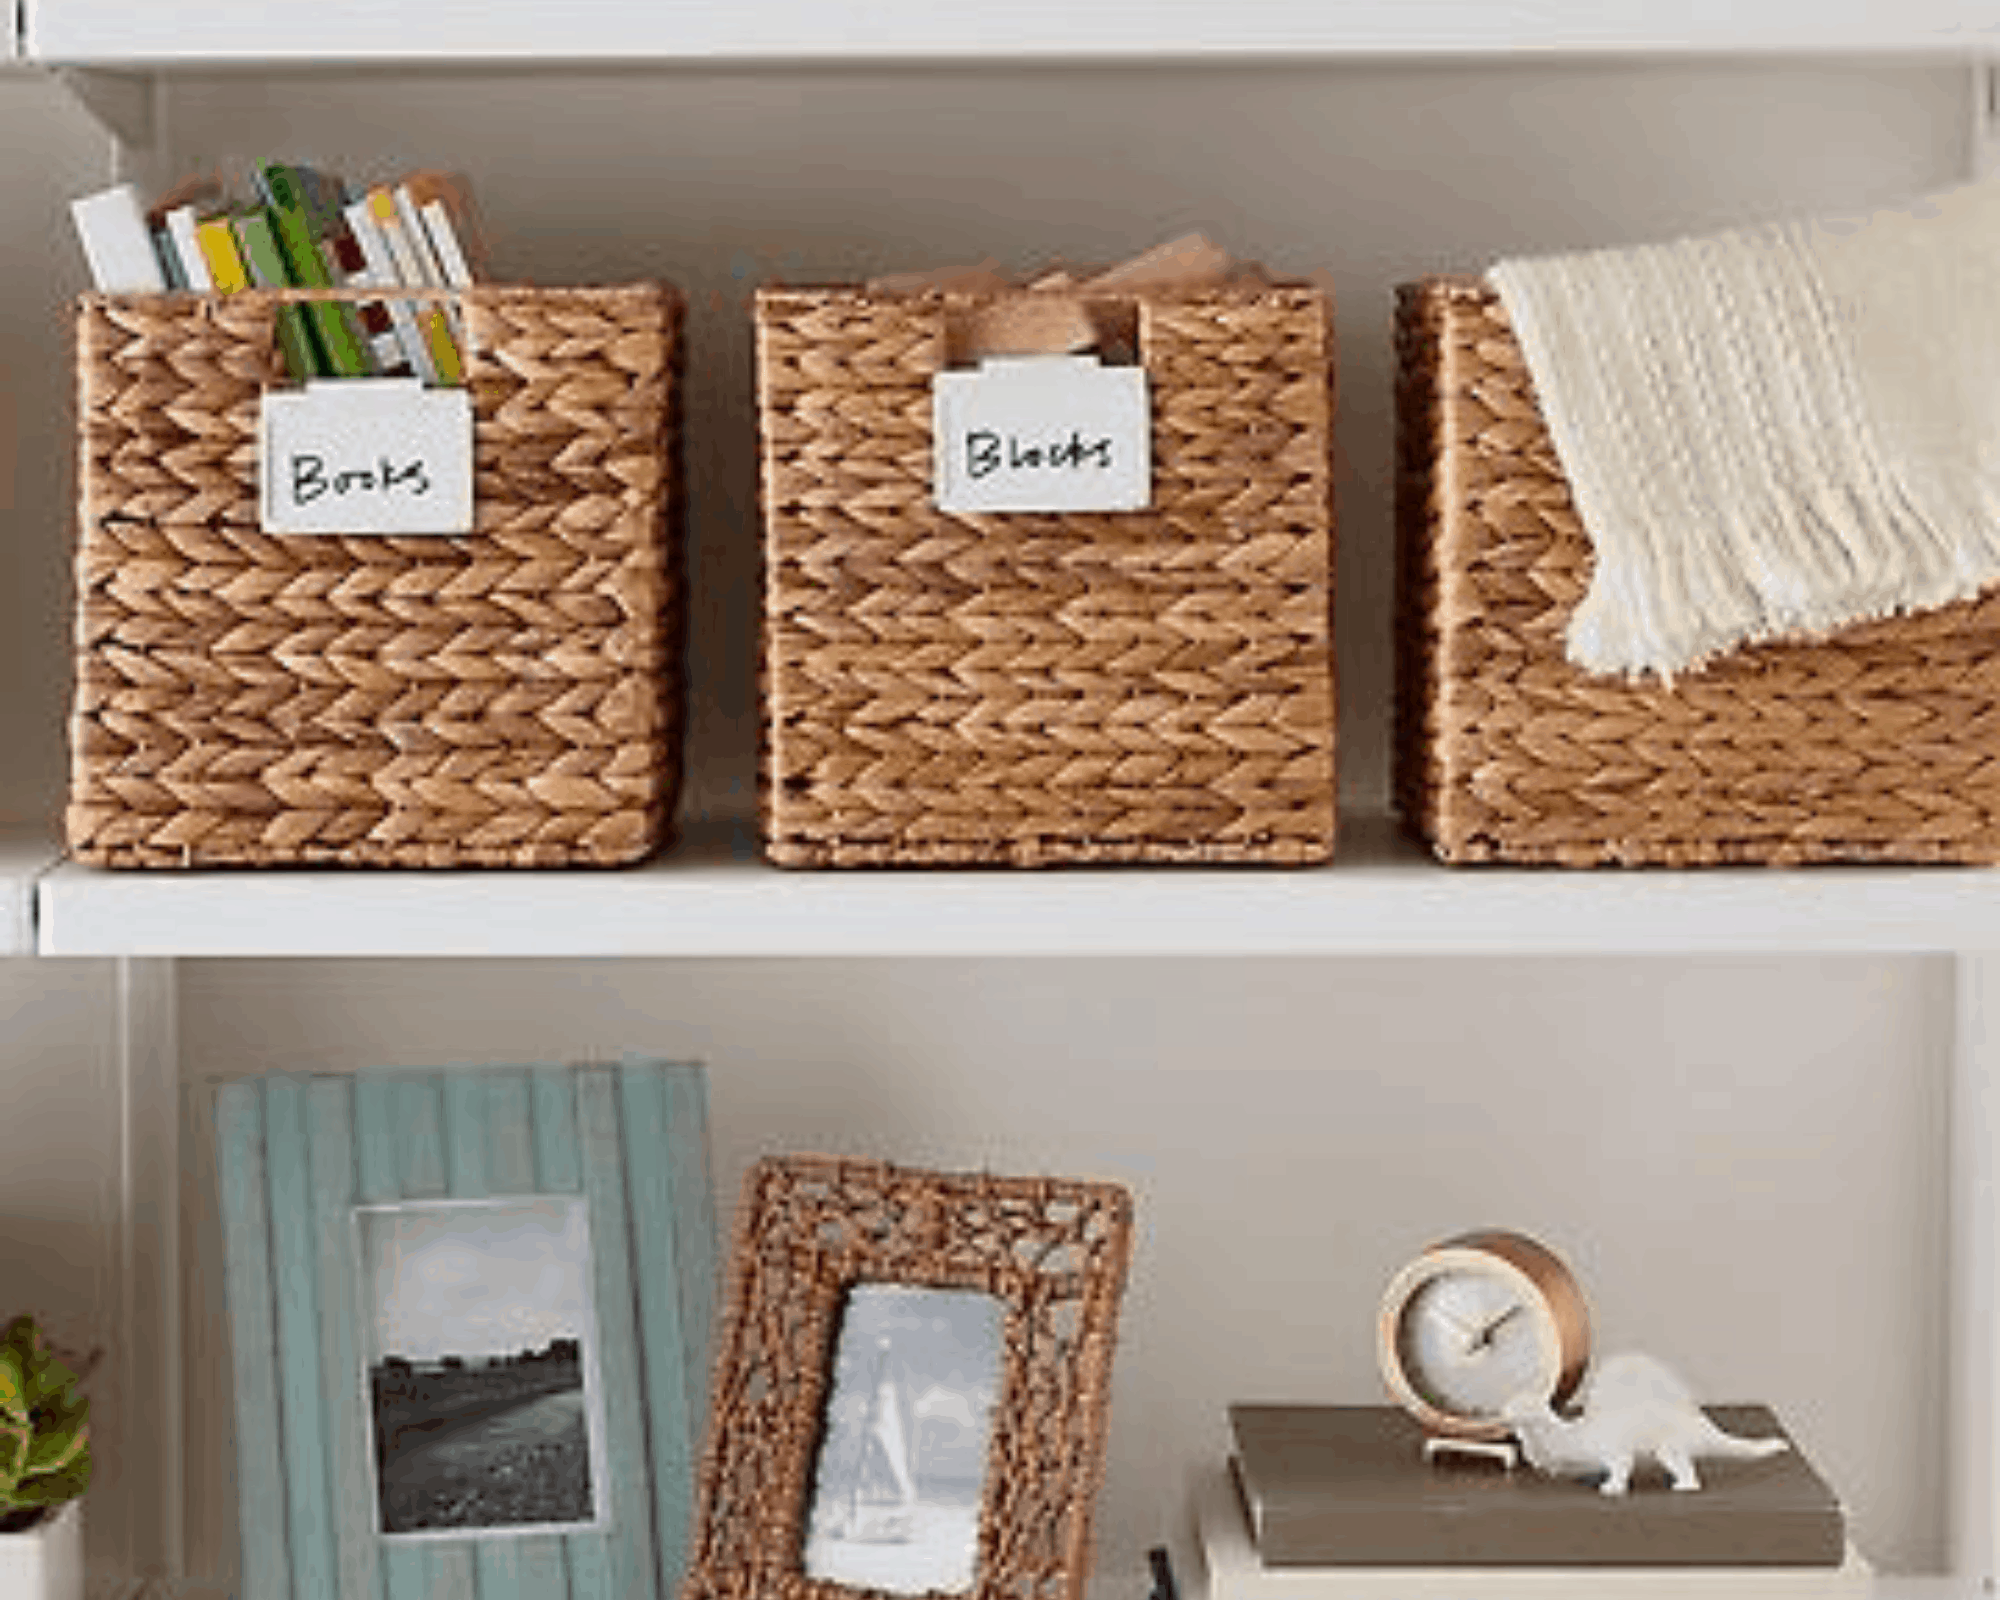 Storage bins of all shapes and sizes help keep things organized in your RV or camper.